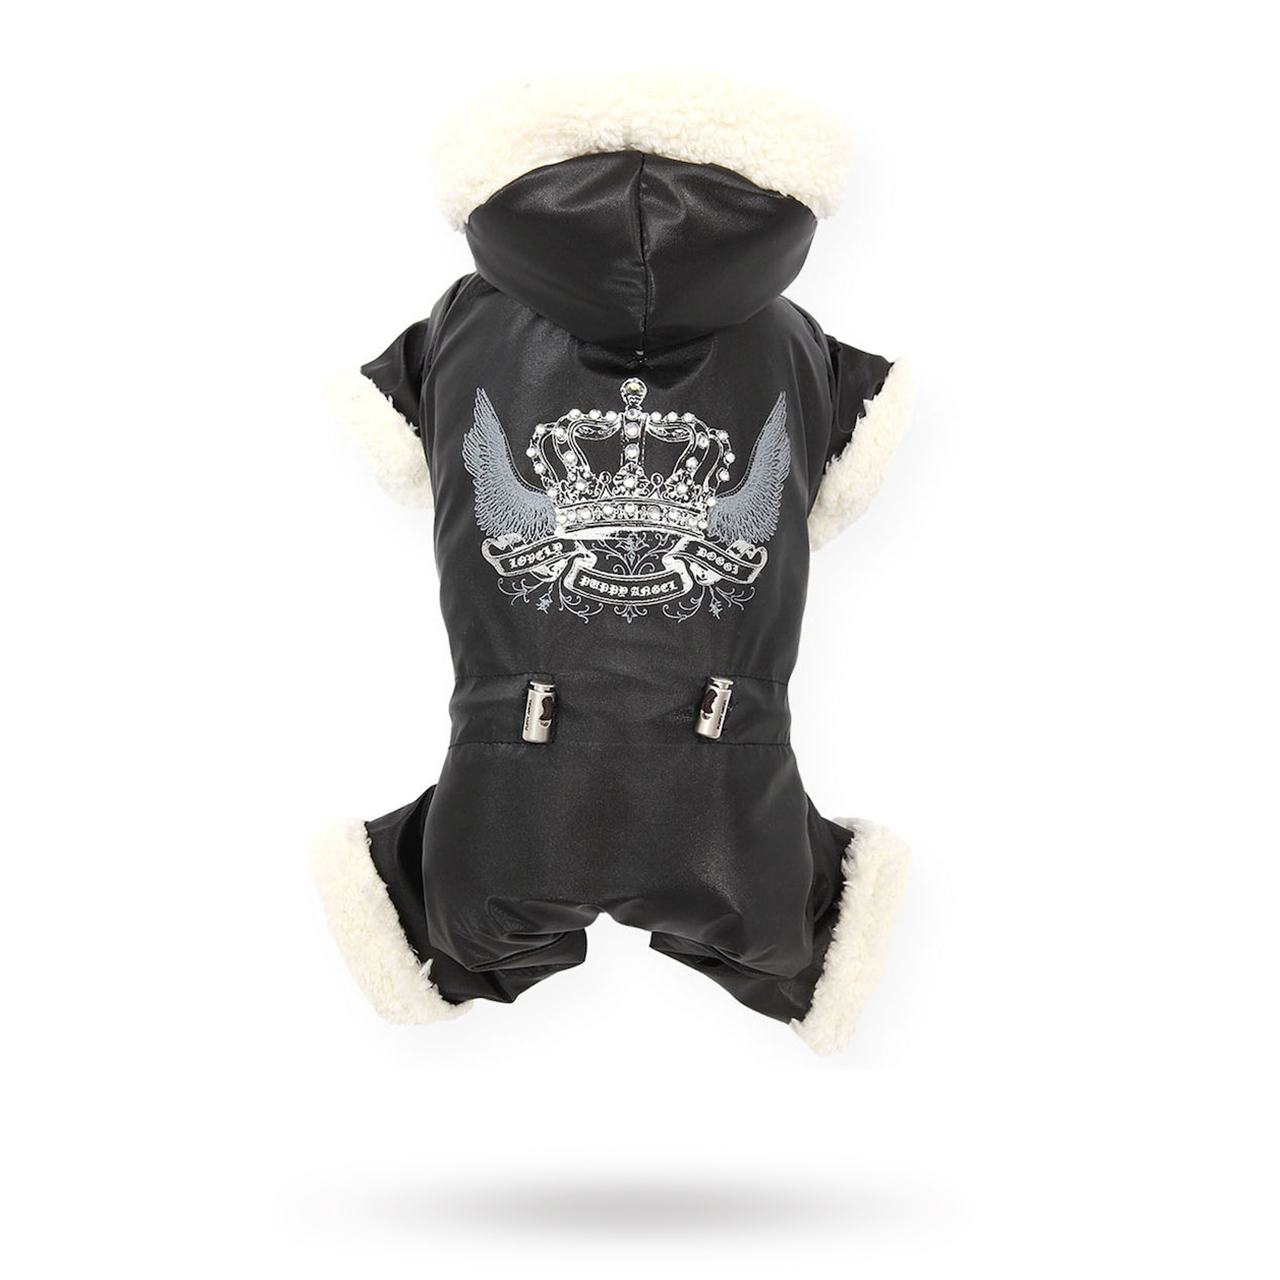 NEVAL Padded Overall